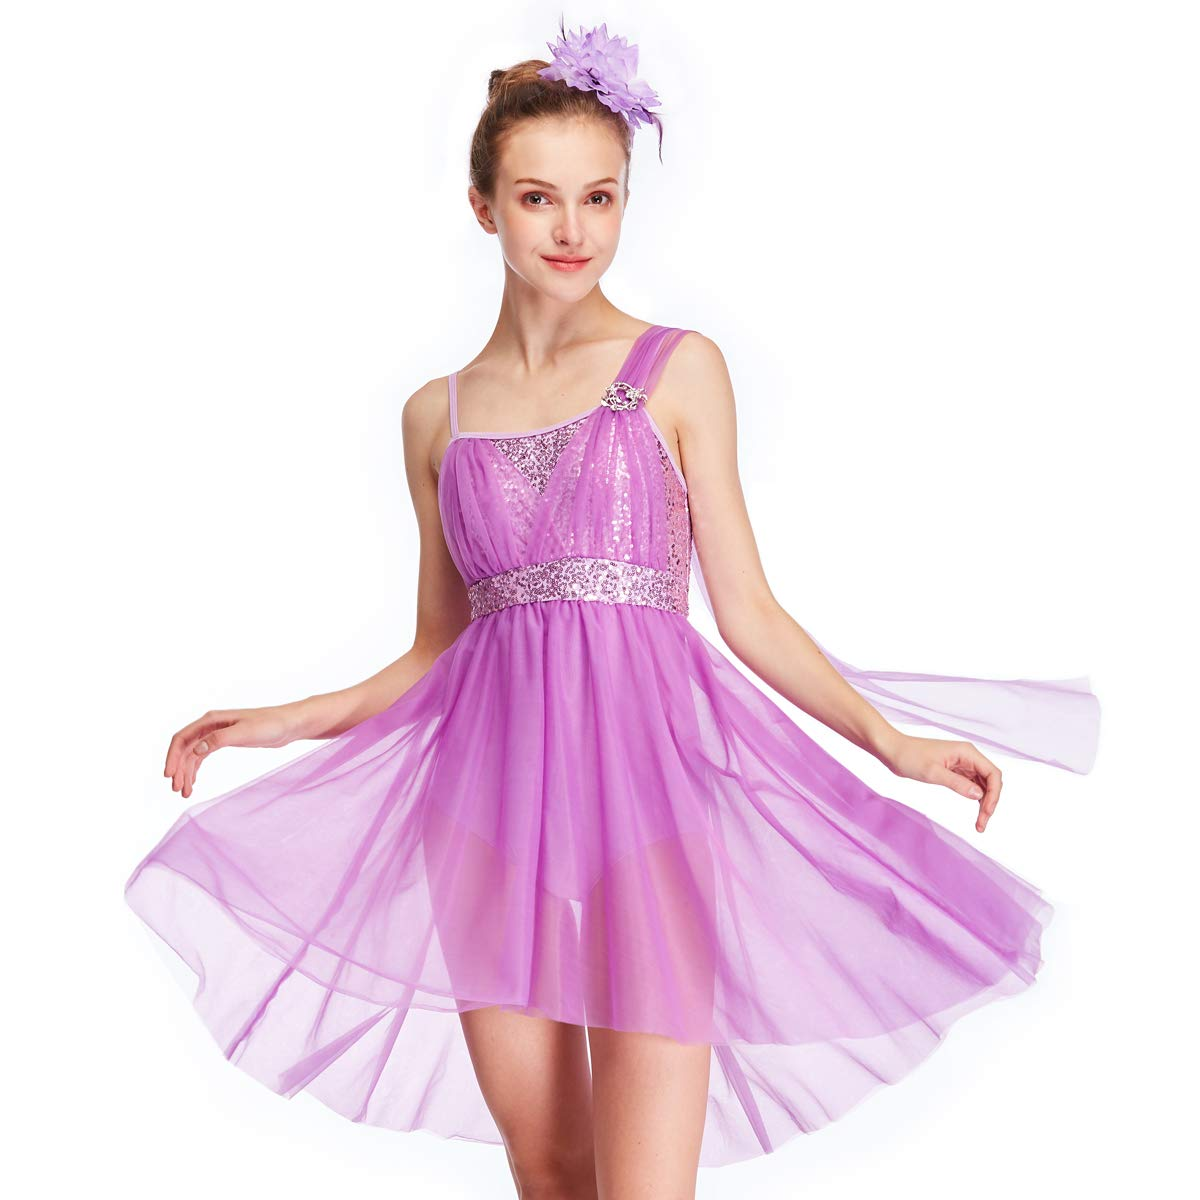 MiDee Tulle Athletic Dance Dresses Costume for Girl's Camisole Sequined Tops High-Low Skirt (PA, Lilac) by MiDee